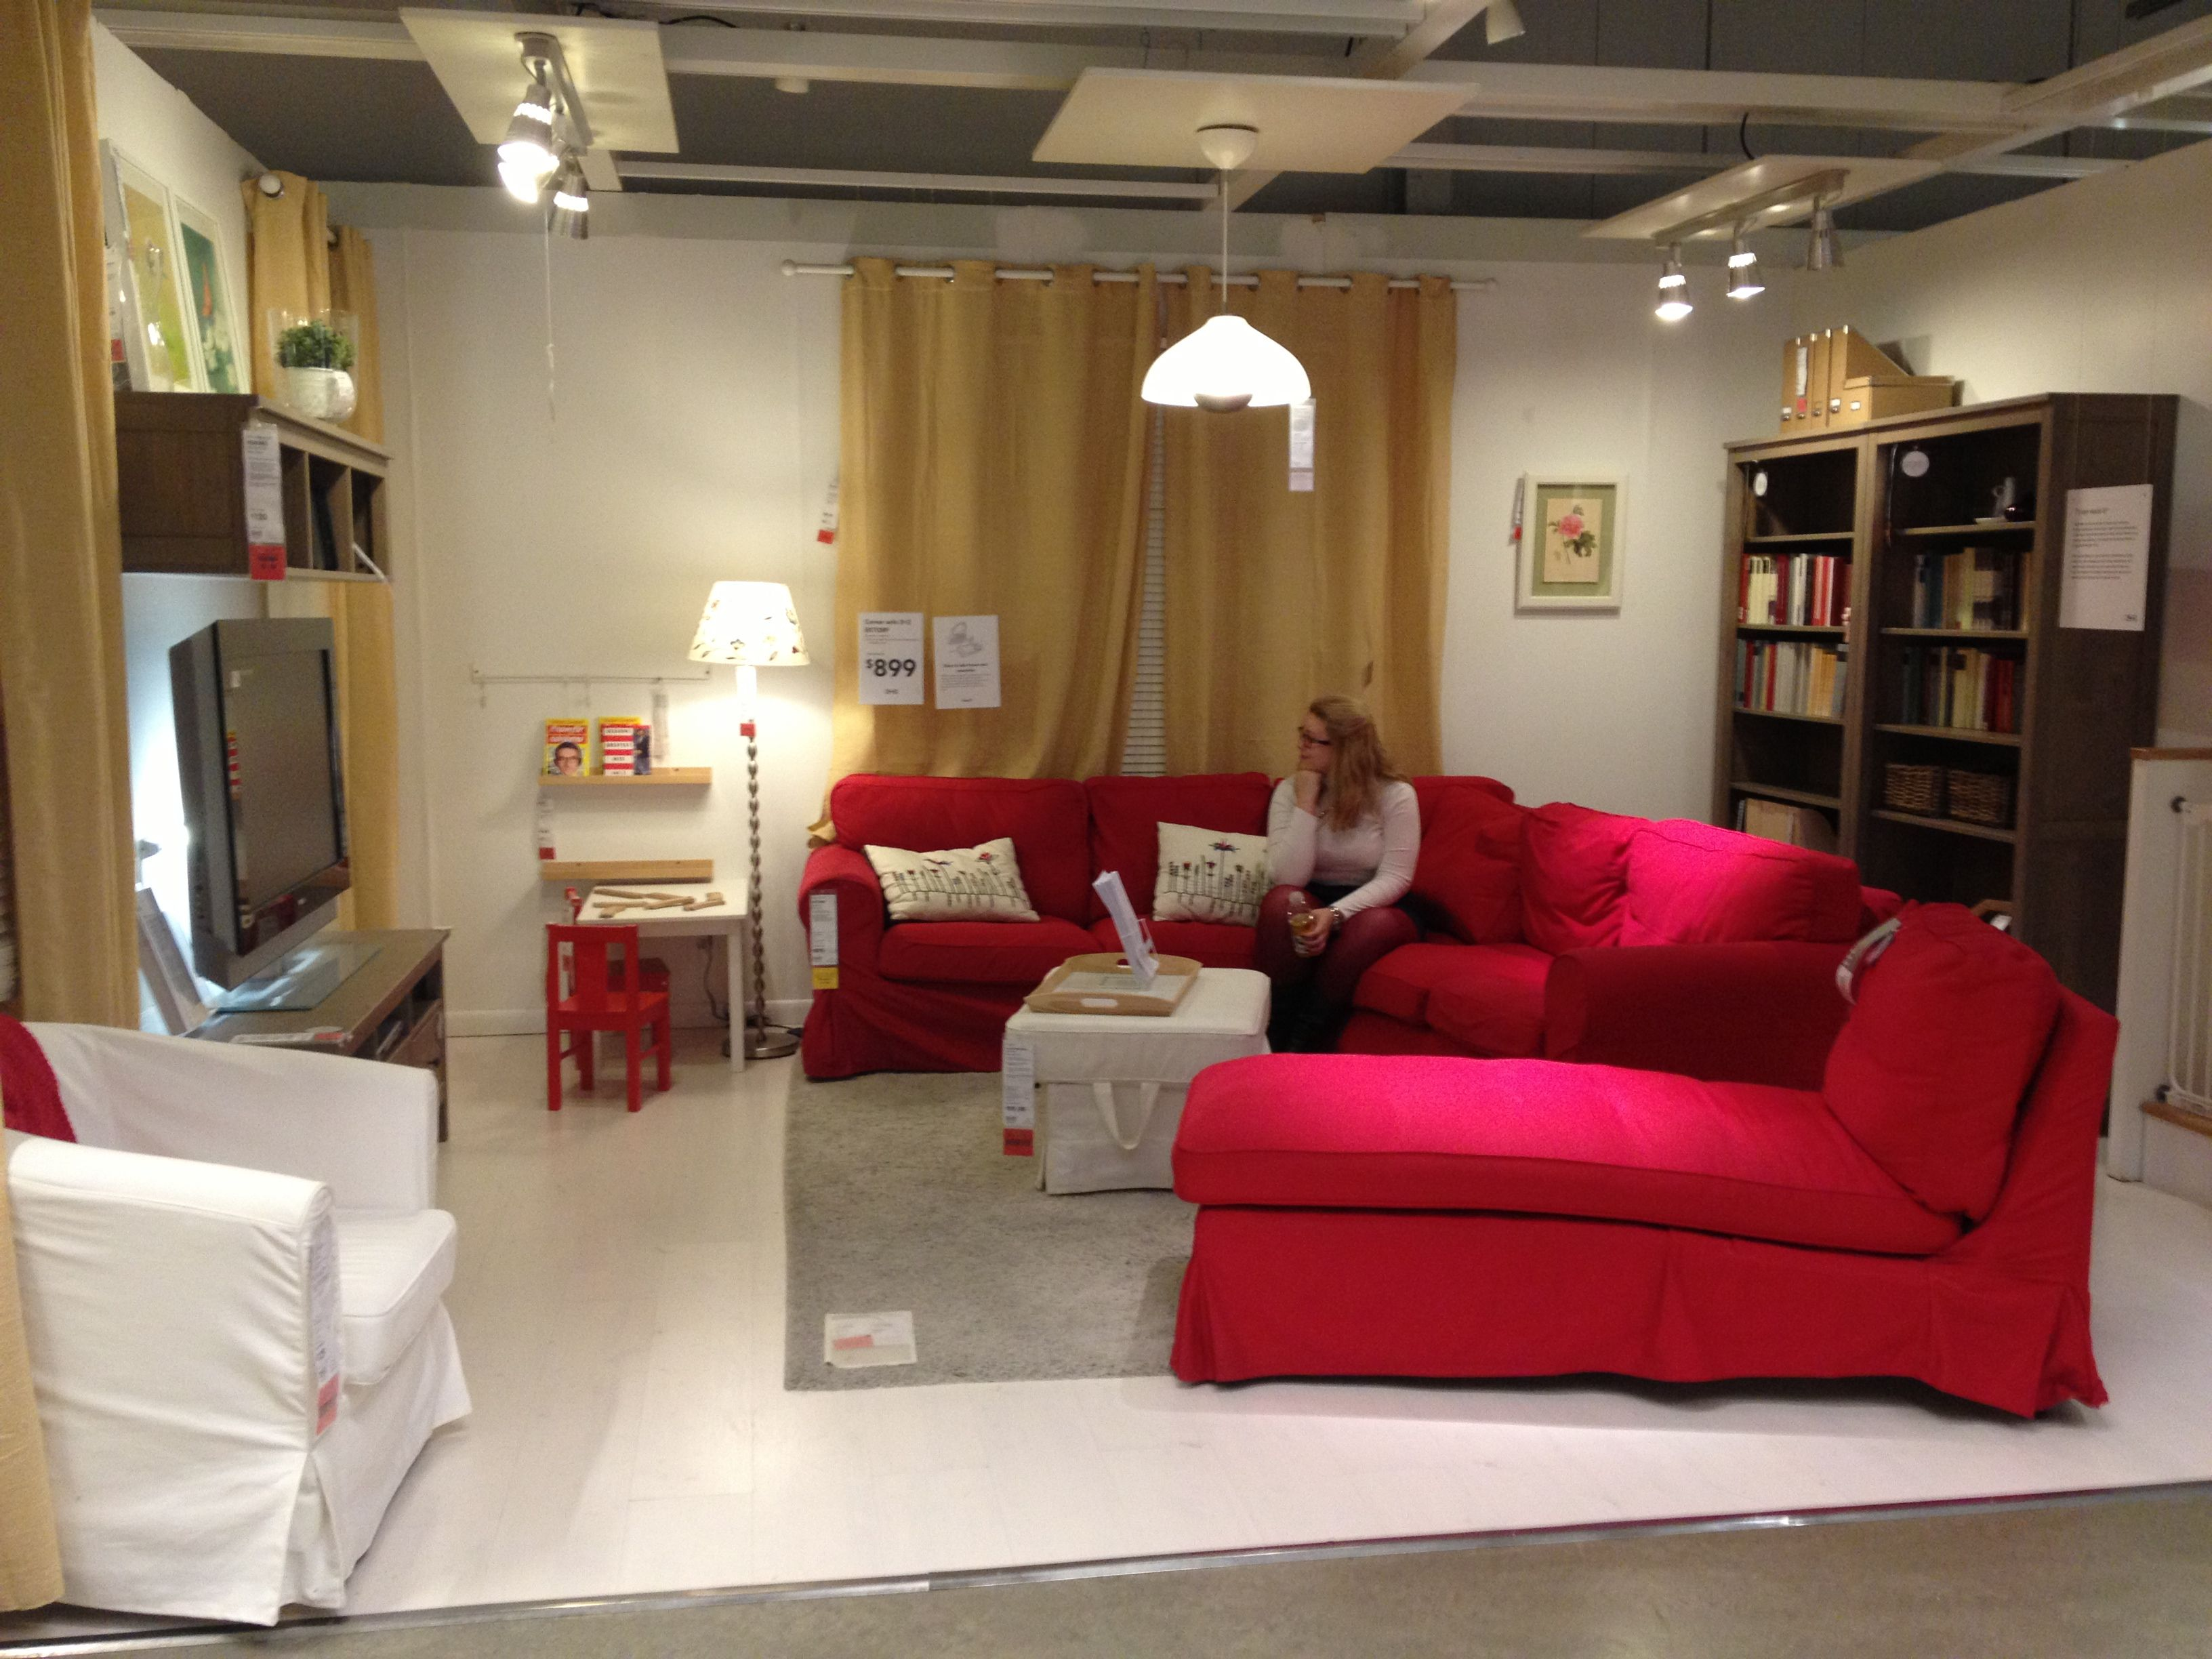 LIVING ROOM WITH A RED IKEA SOFA IDEARS   Google Search